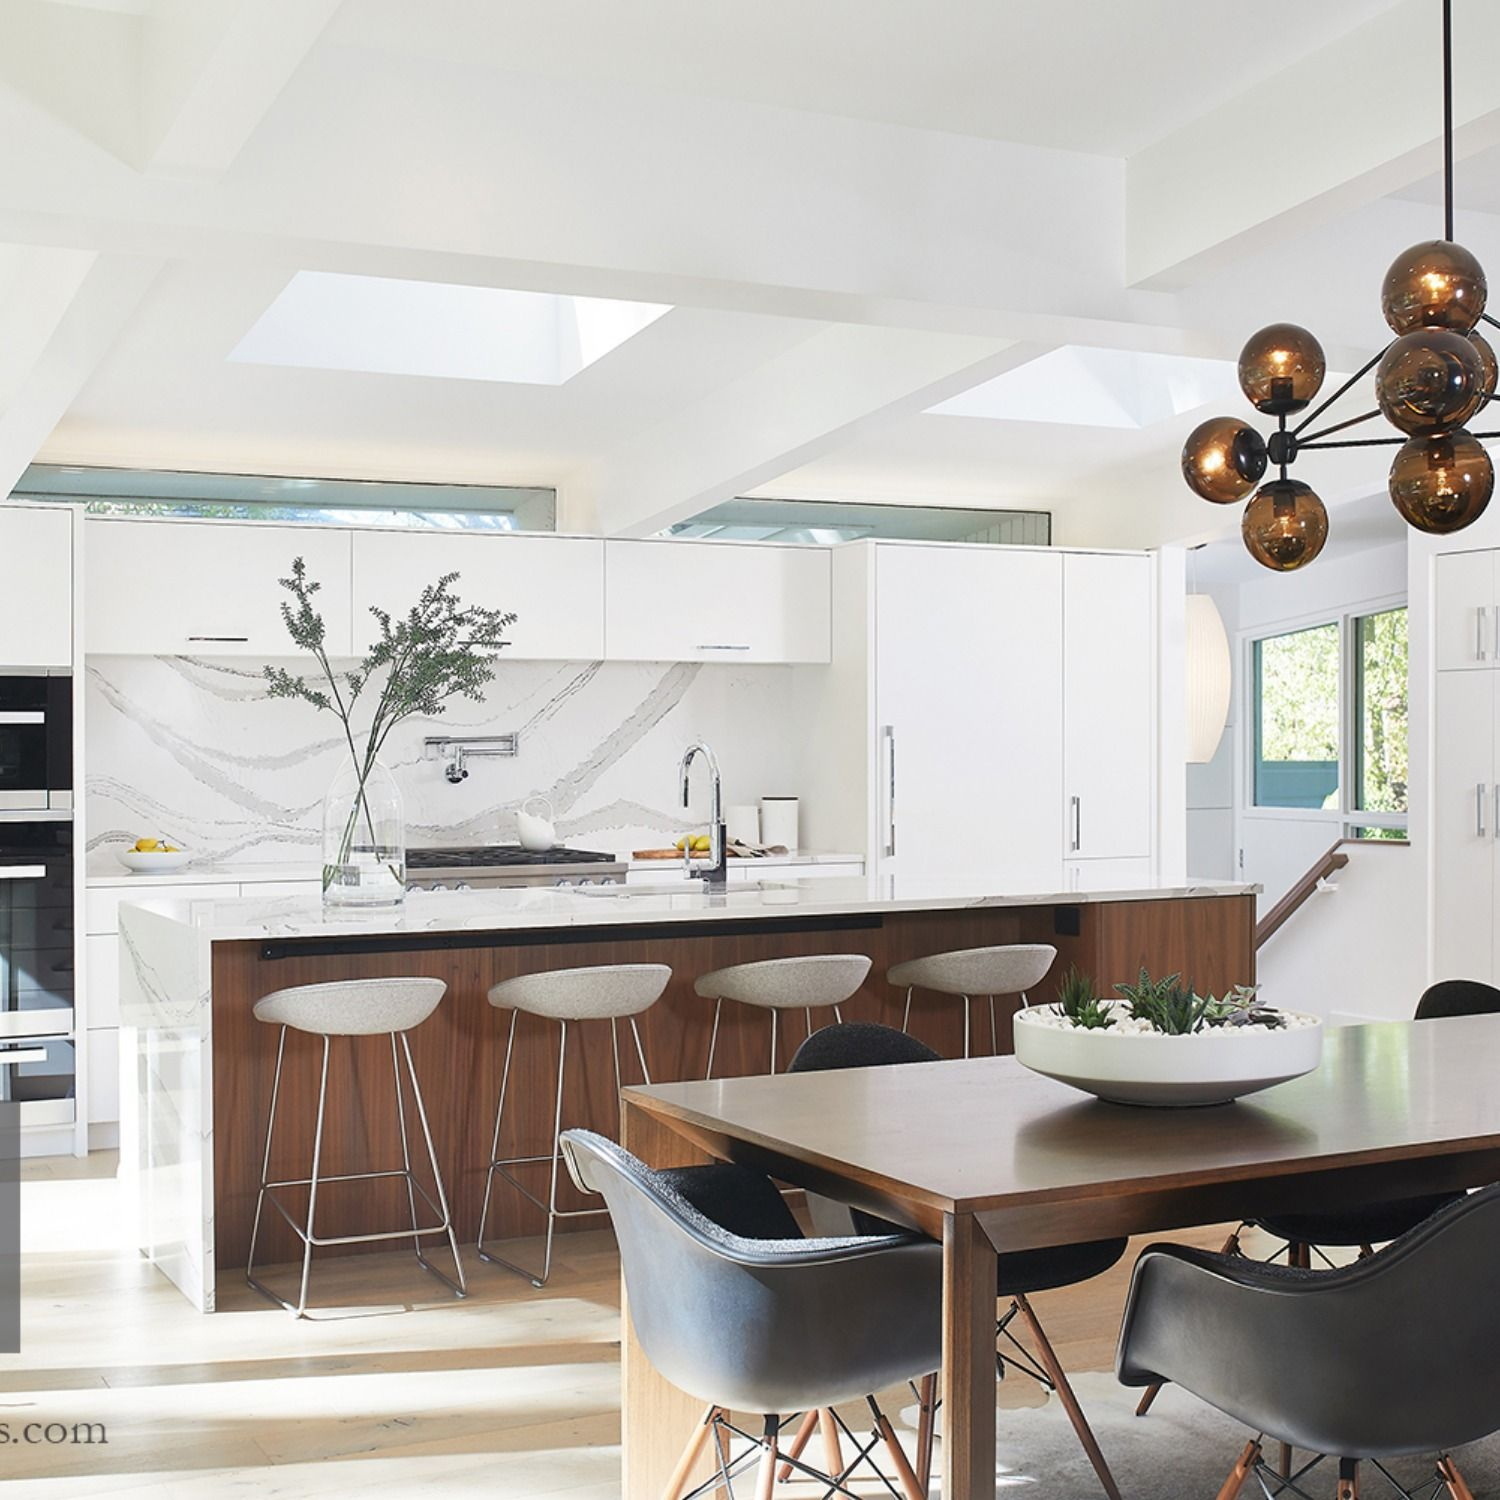 The Kitchen, Designed By TruKitchens Of Grand Rapids, Michigan, Features  Cabinets From Grabill Cabinets In Their Frameless U201cModeu201d Door Style In A  U201cBlancou201d ...